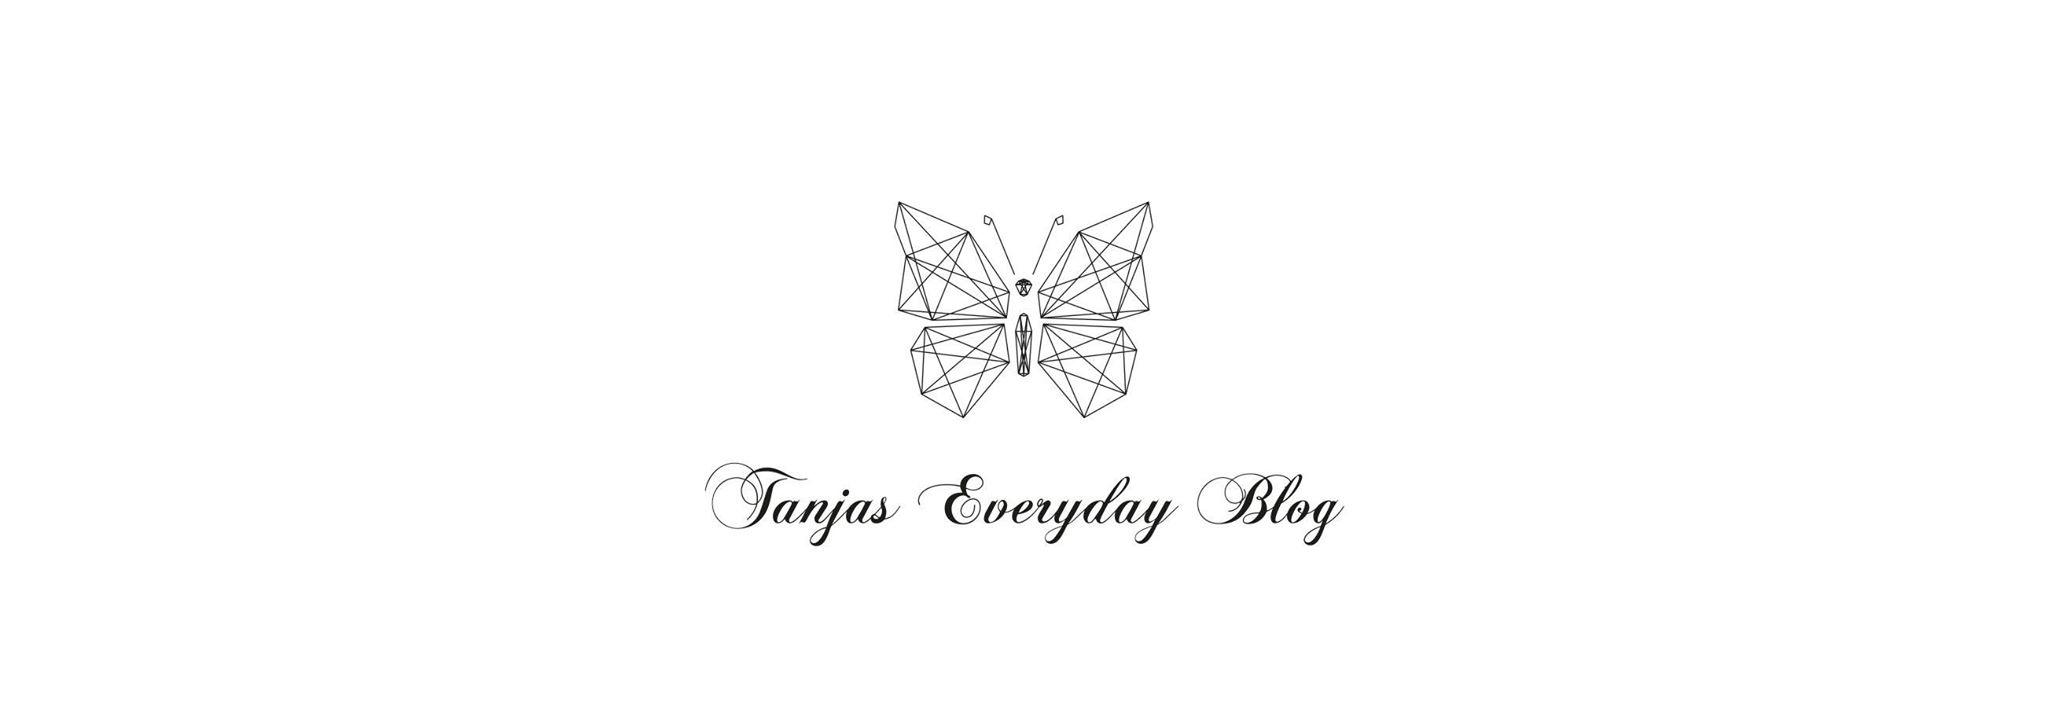 Tanja's Everyday Blog